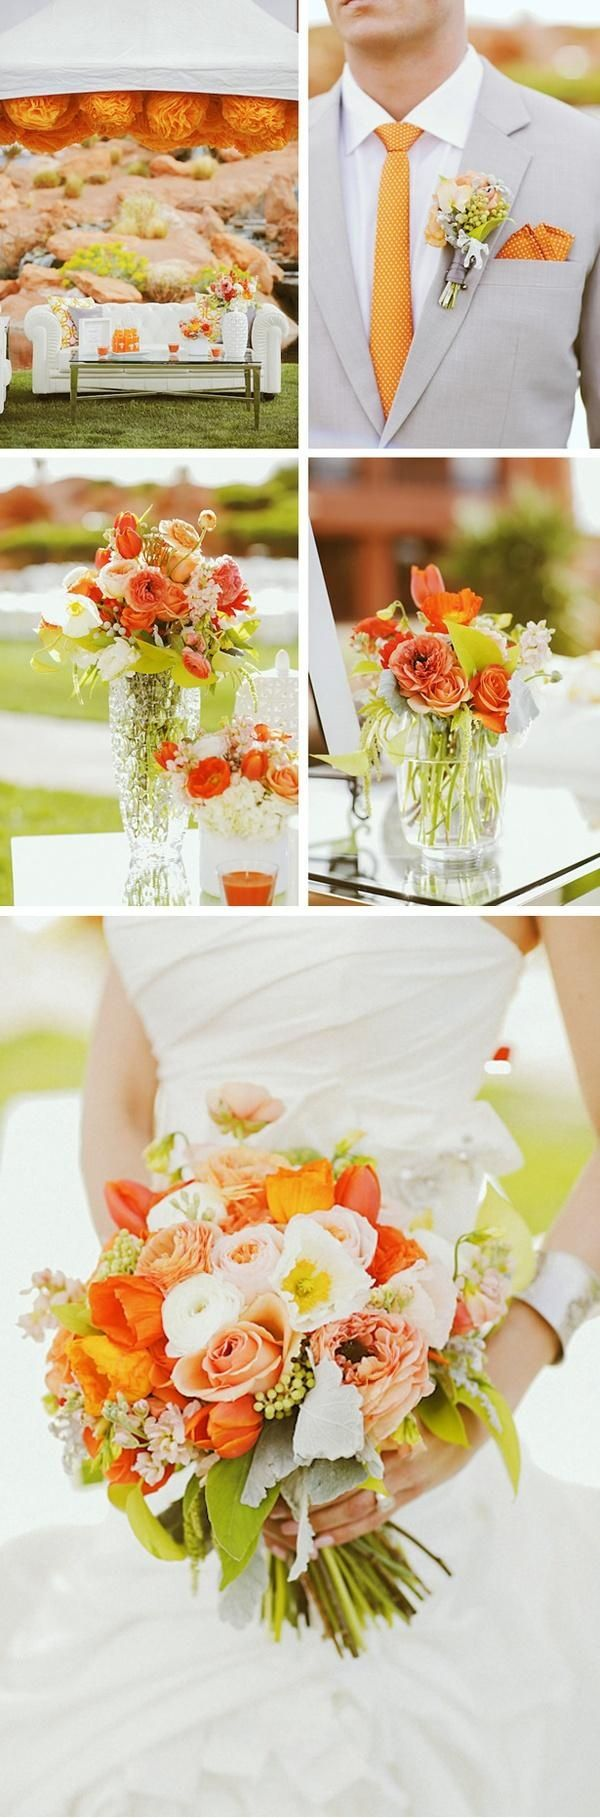 Get your free fall wedding fix! Were in love with the colors for #Fall #orange #ambers #fallweddings